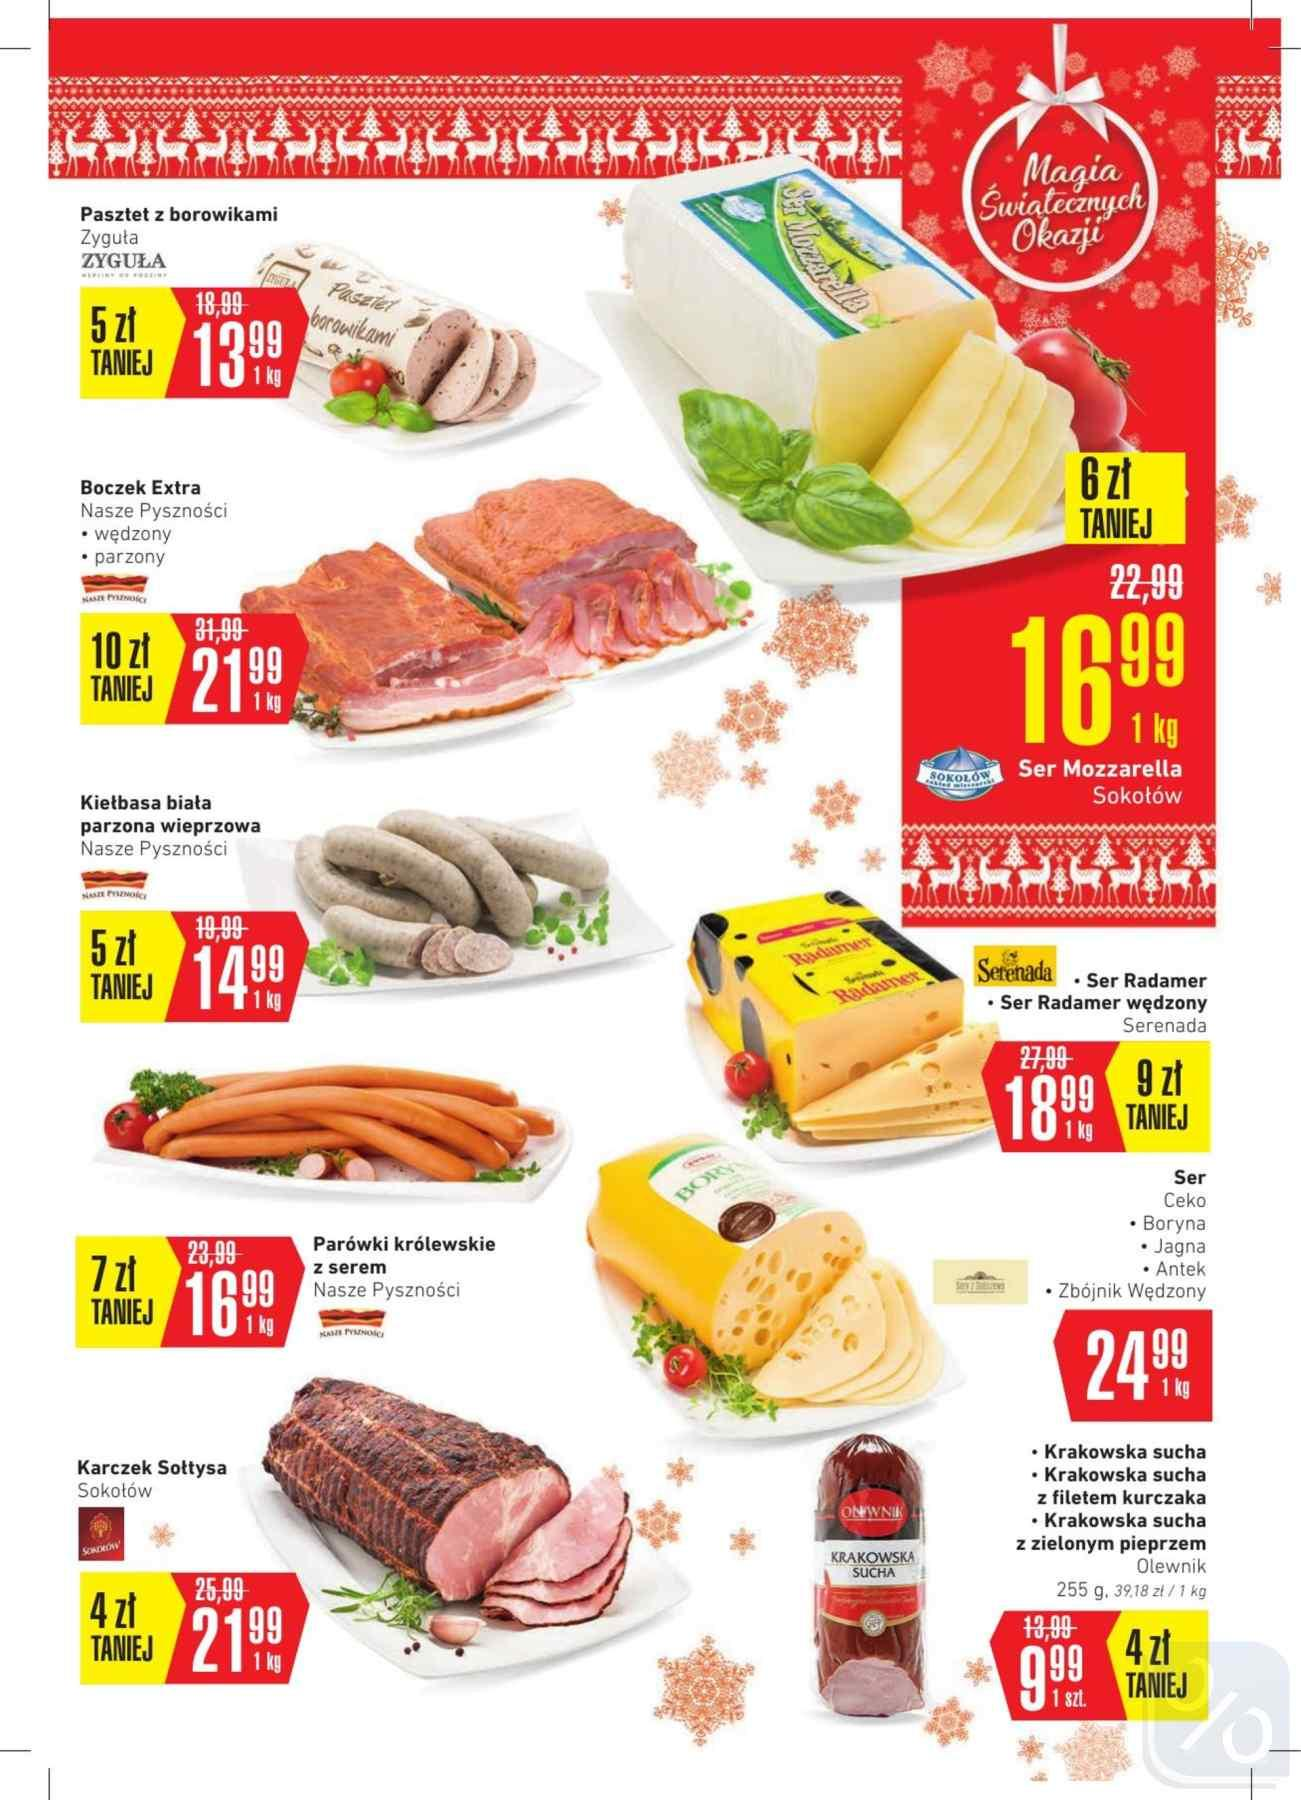 Gazetka promocyjna Intermarche do 10/12/2018 str.9